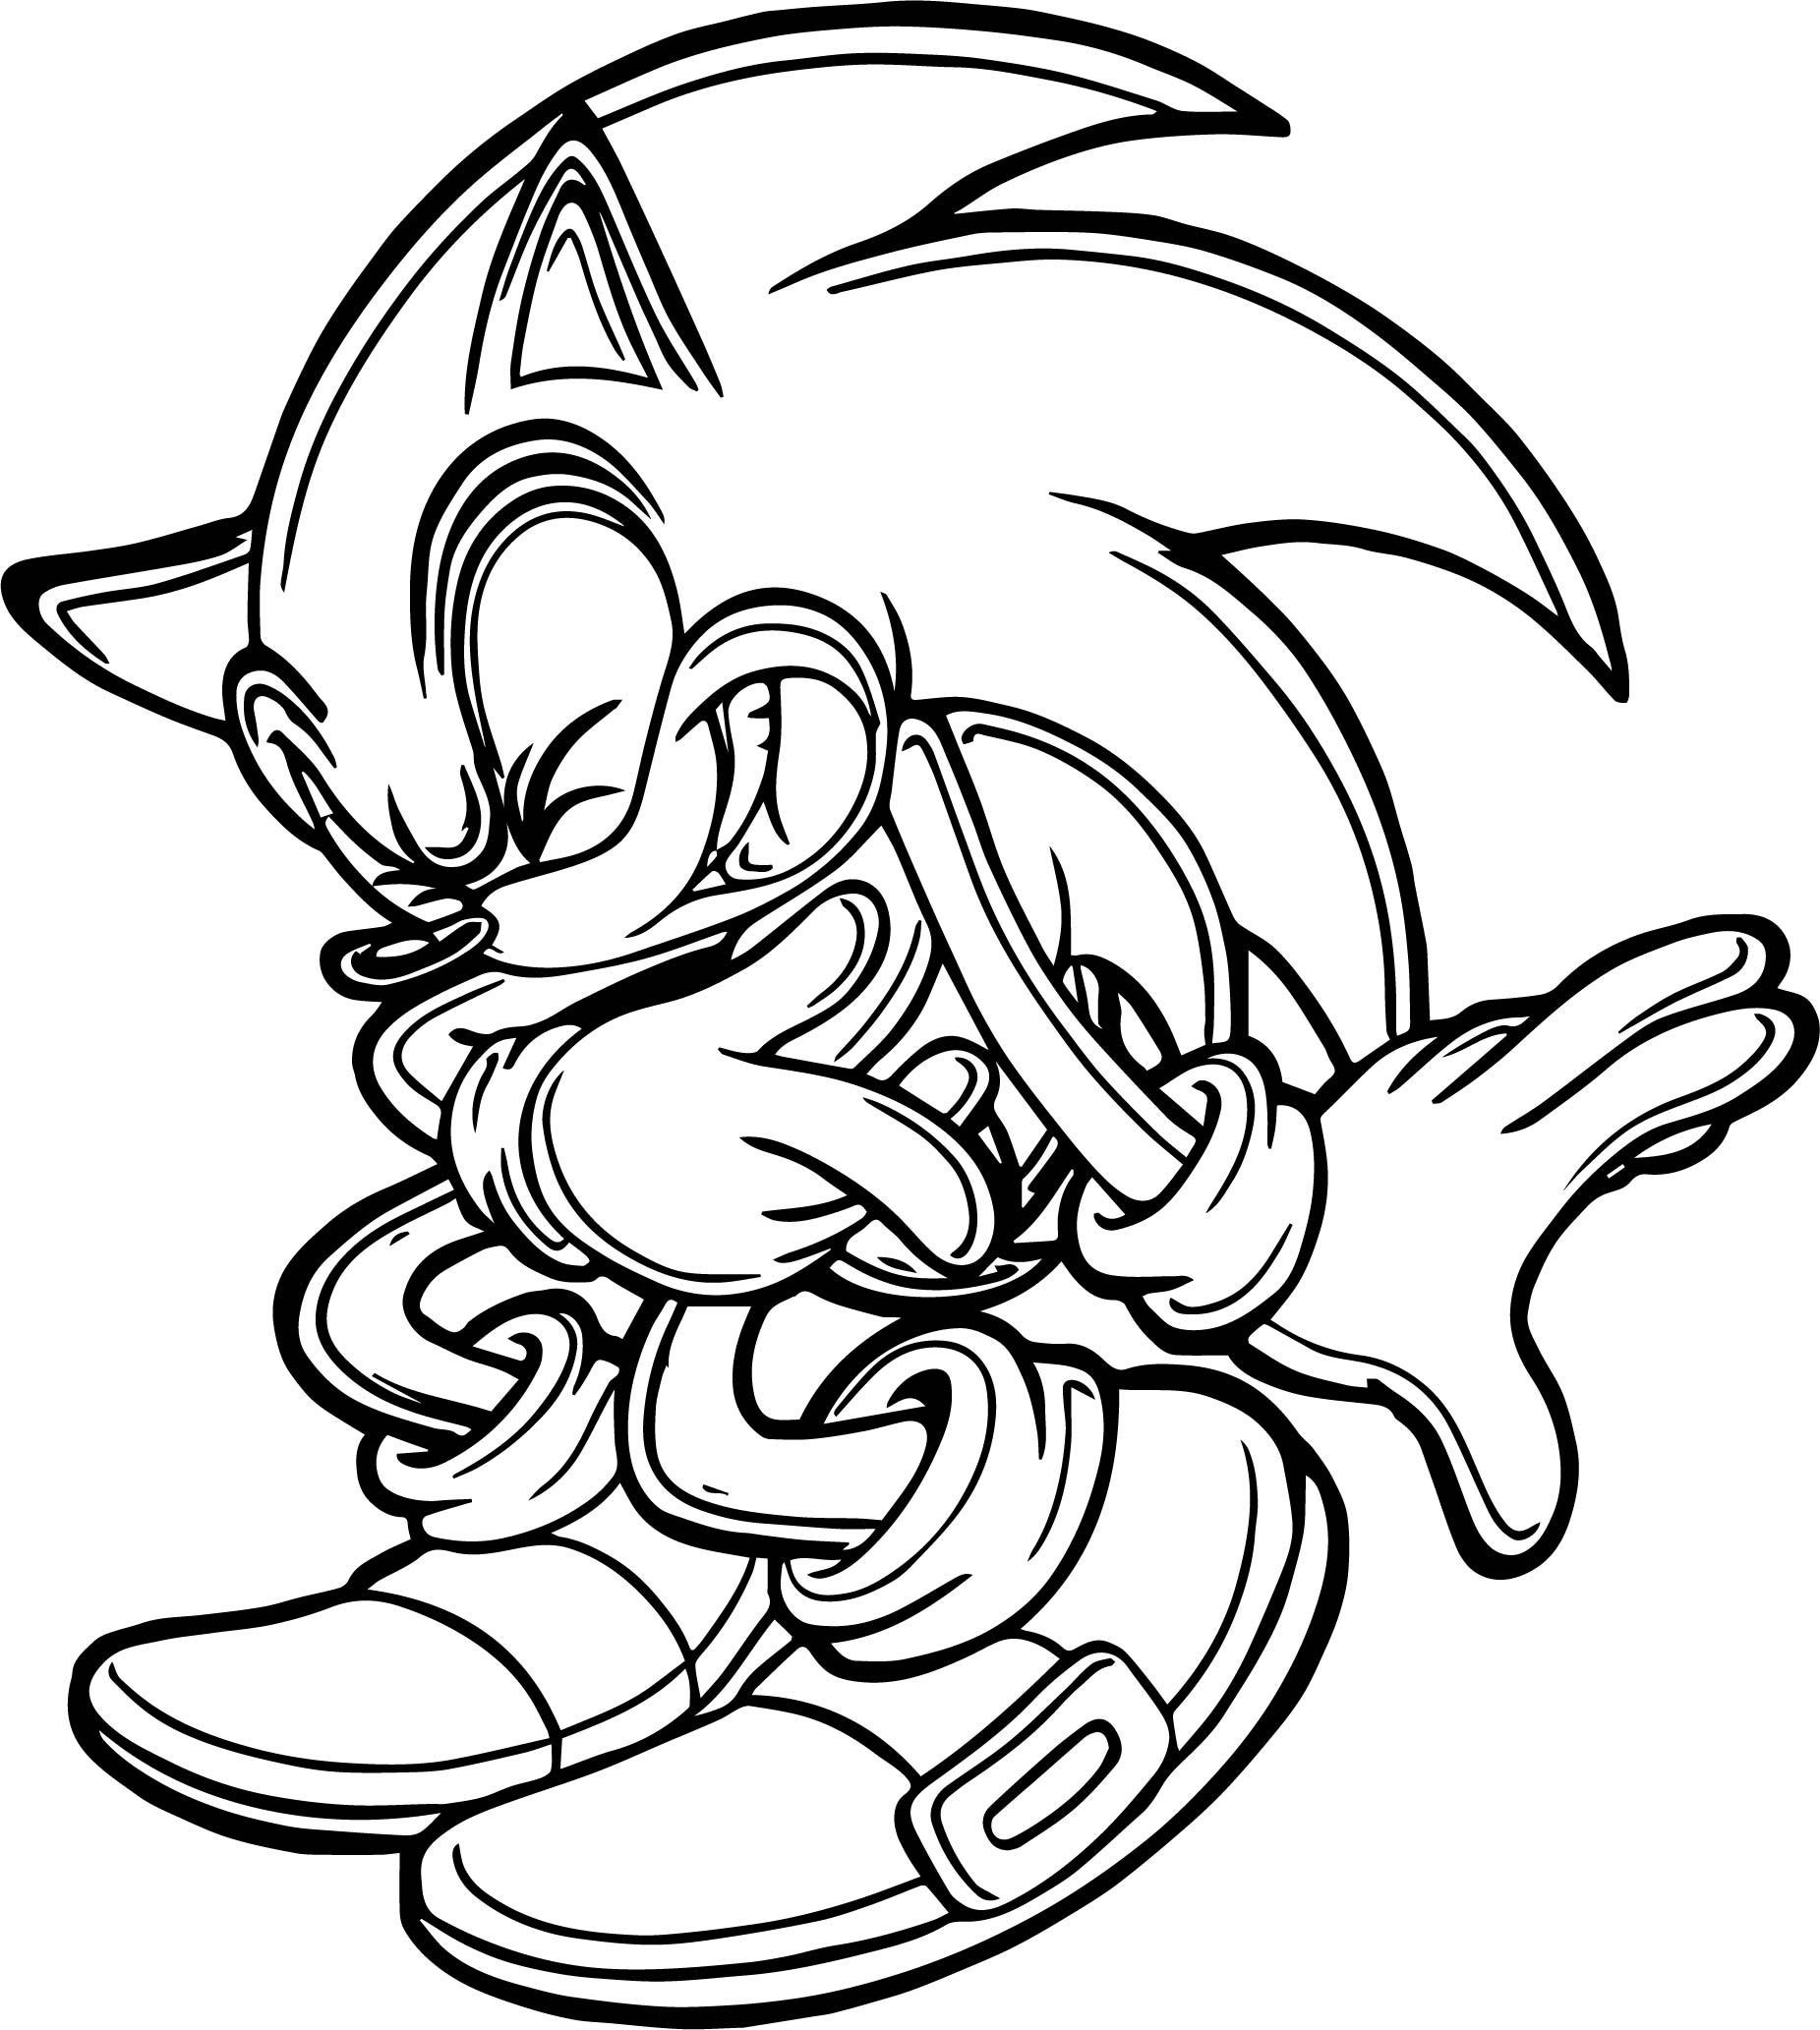 Sonic The Hedgehog Coloring Page WeColoringPage 019